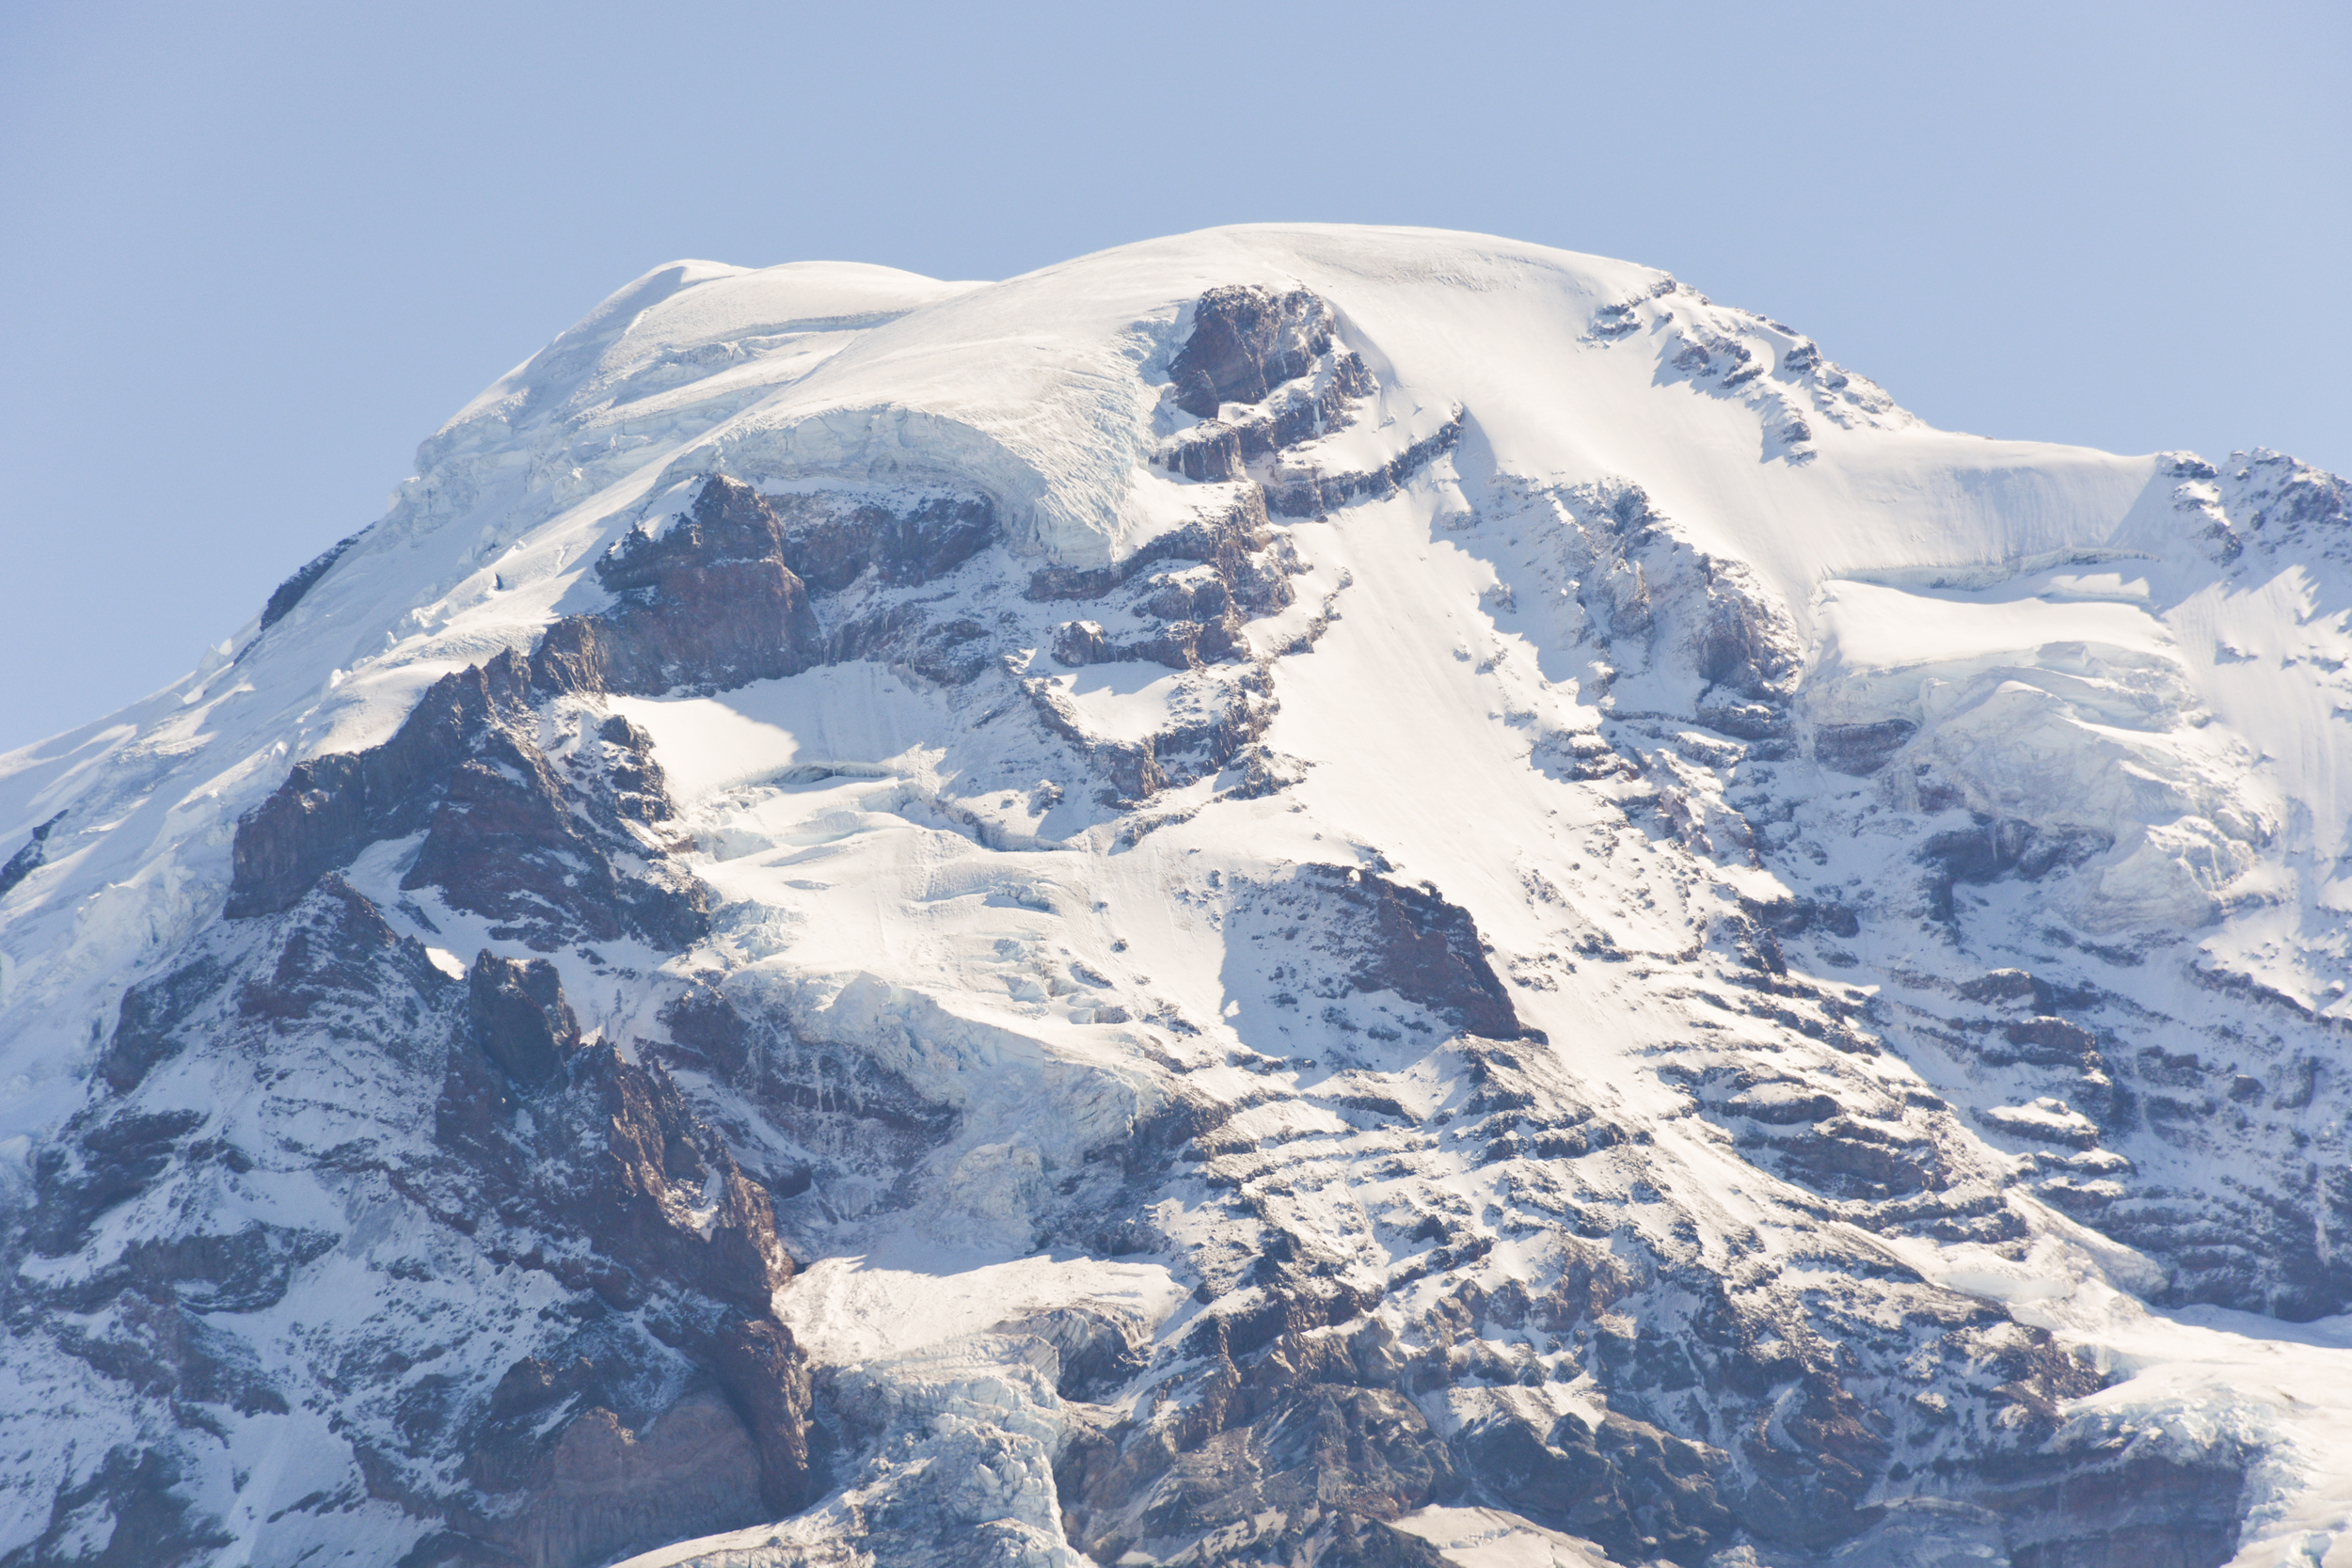 Icy summit of Mount Rainier as seen from Eagle's Roost